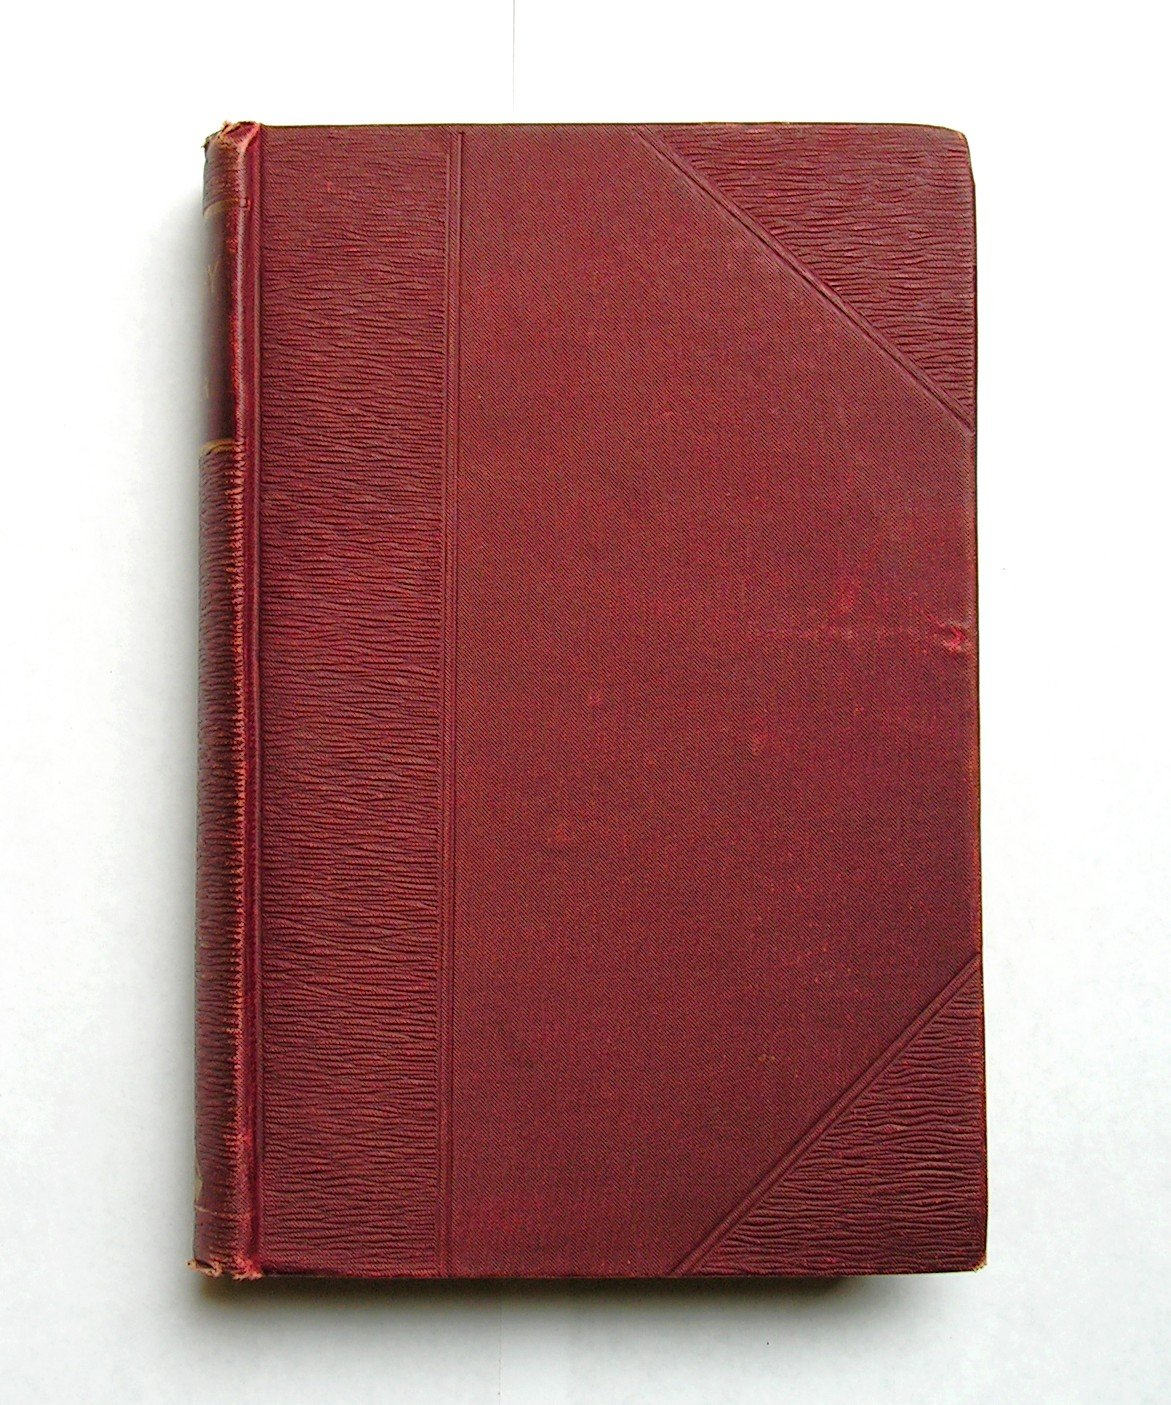 The Spy - J. Fenimore Cooper - American Publishers Corp